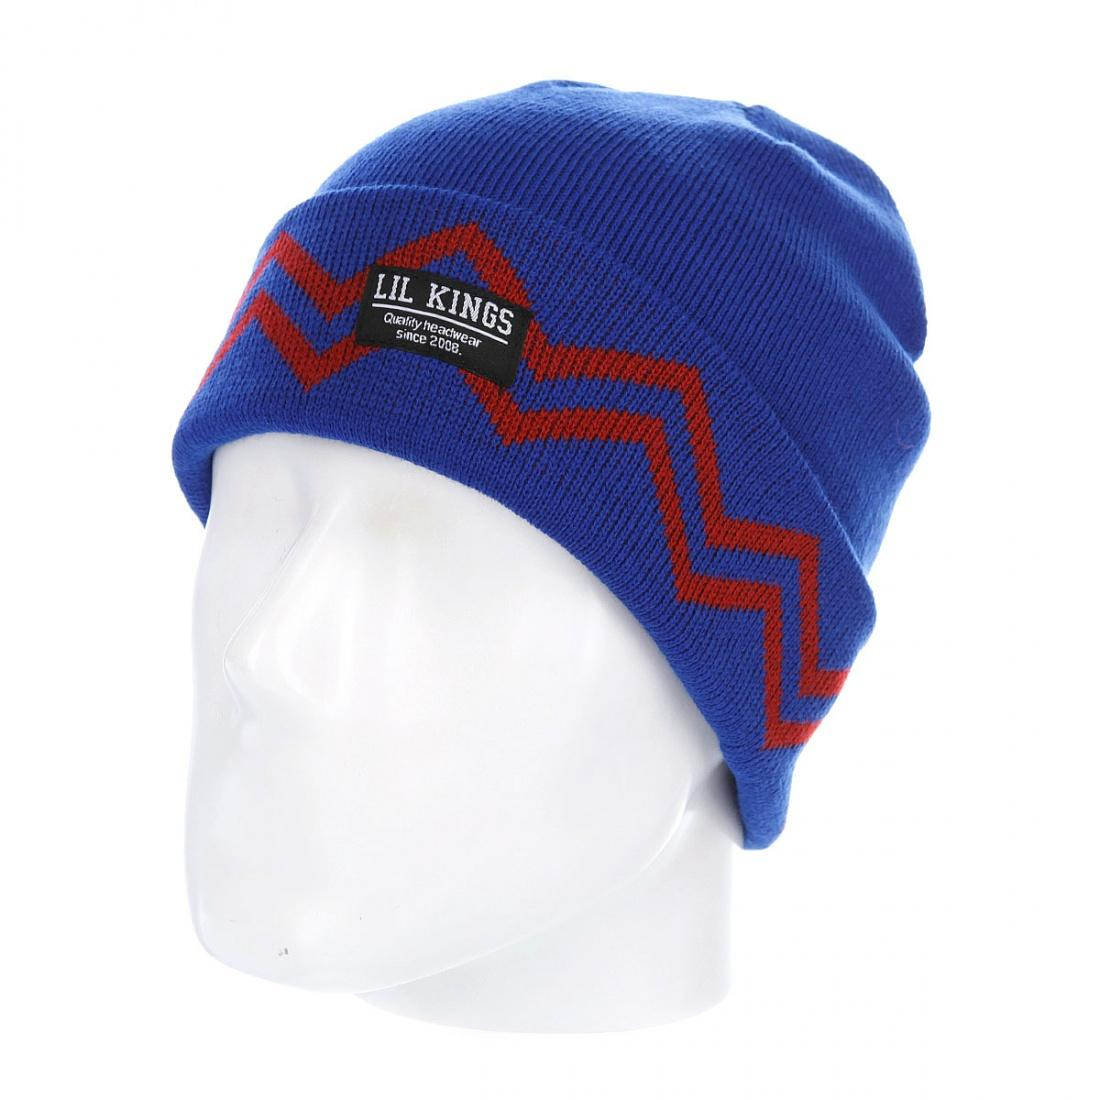 Lil kings Шапка Lil kings Truerap Blue/Red One size